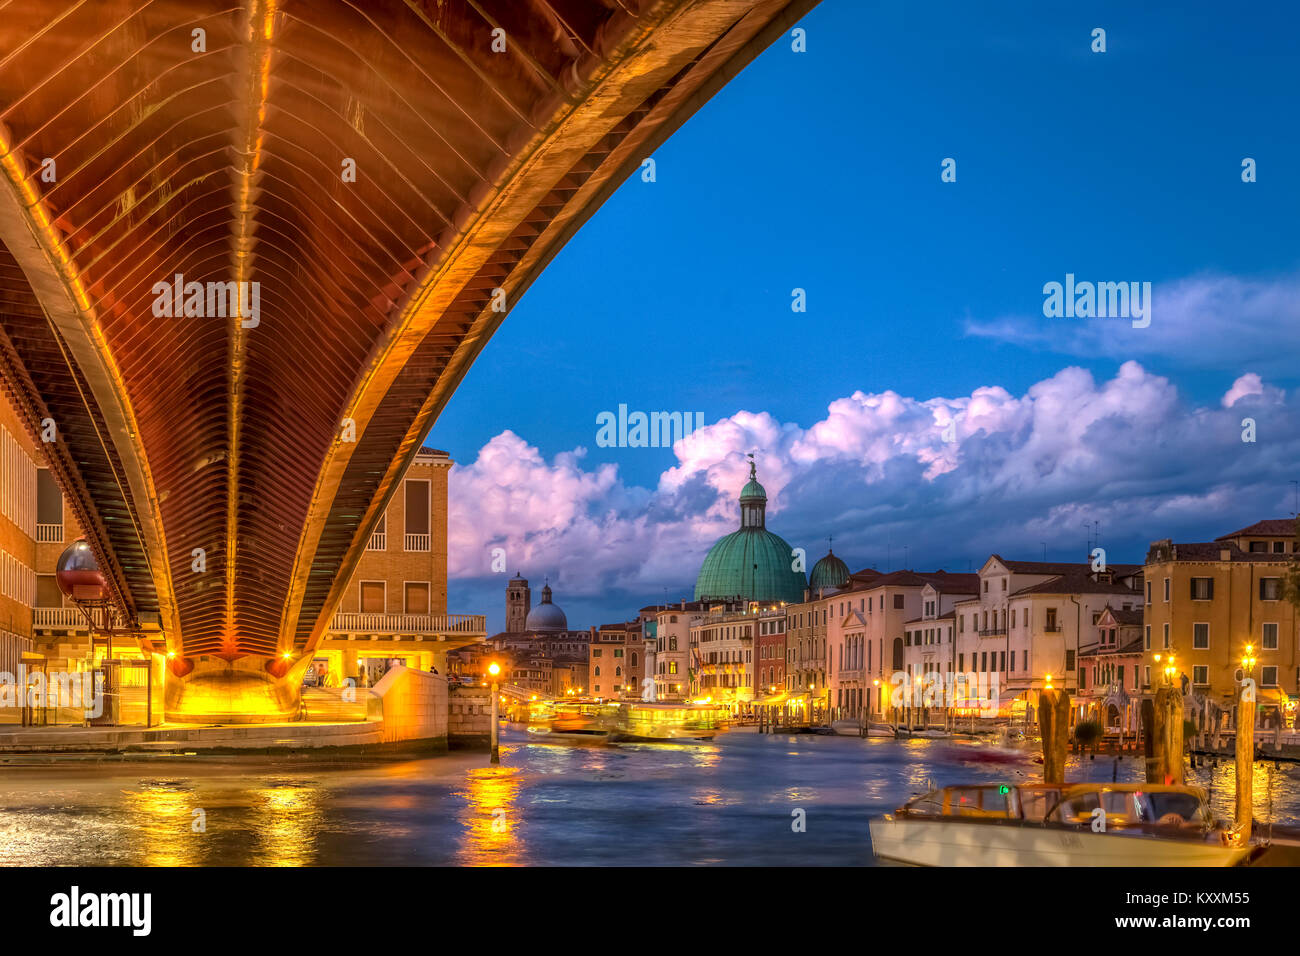 The Grand Canal and pedestrian bridge at Piazzale Roma at night in Veneto, Venice, Italy, Europe. - Stock Image